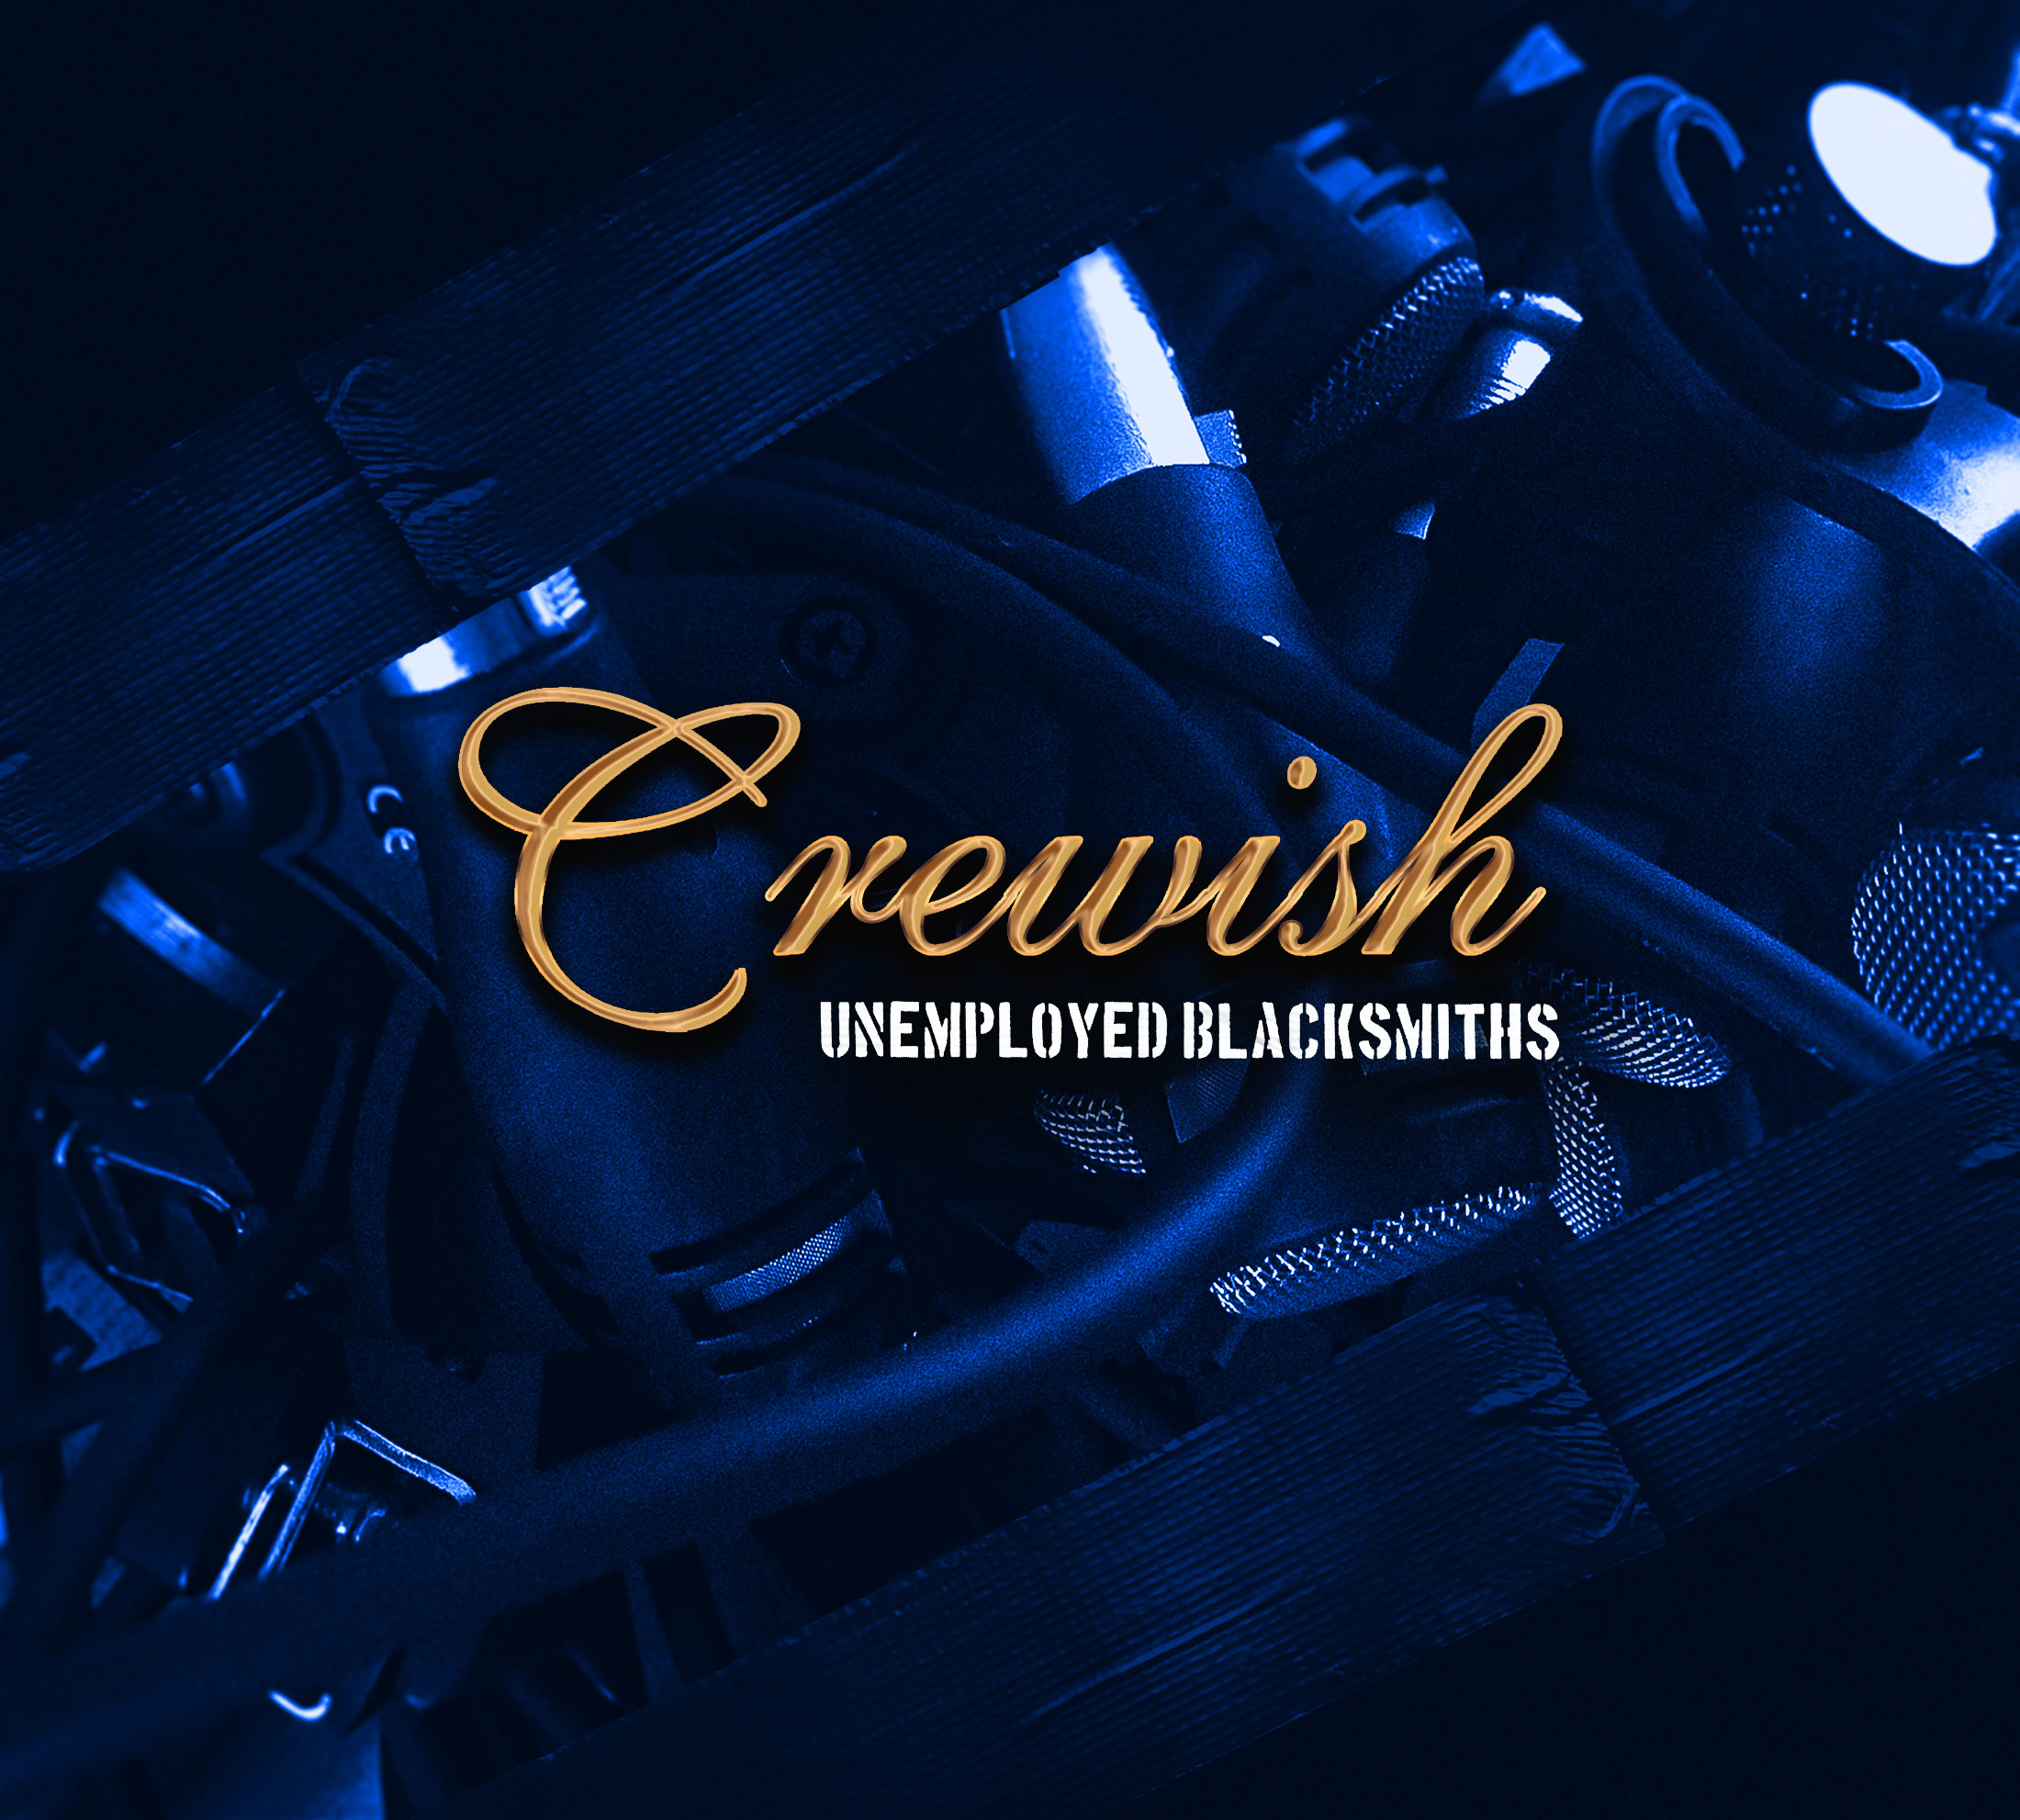 «Crewish – Unemployed Blacksmiths» Proyecto del equipo de NIGHTWISH para recaudar dinero